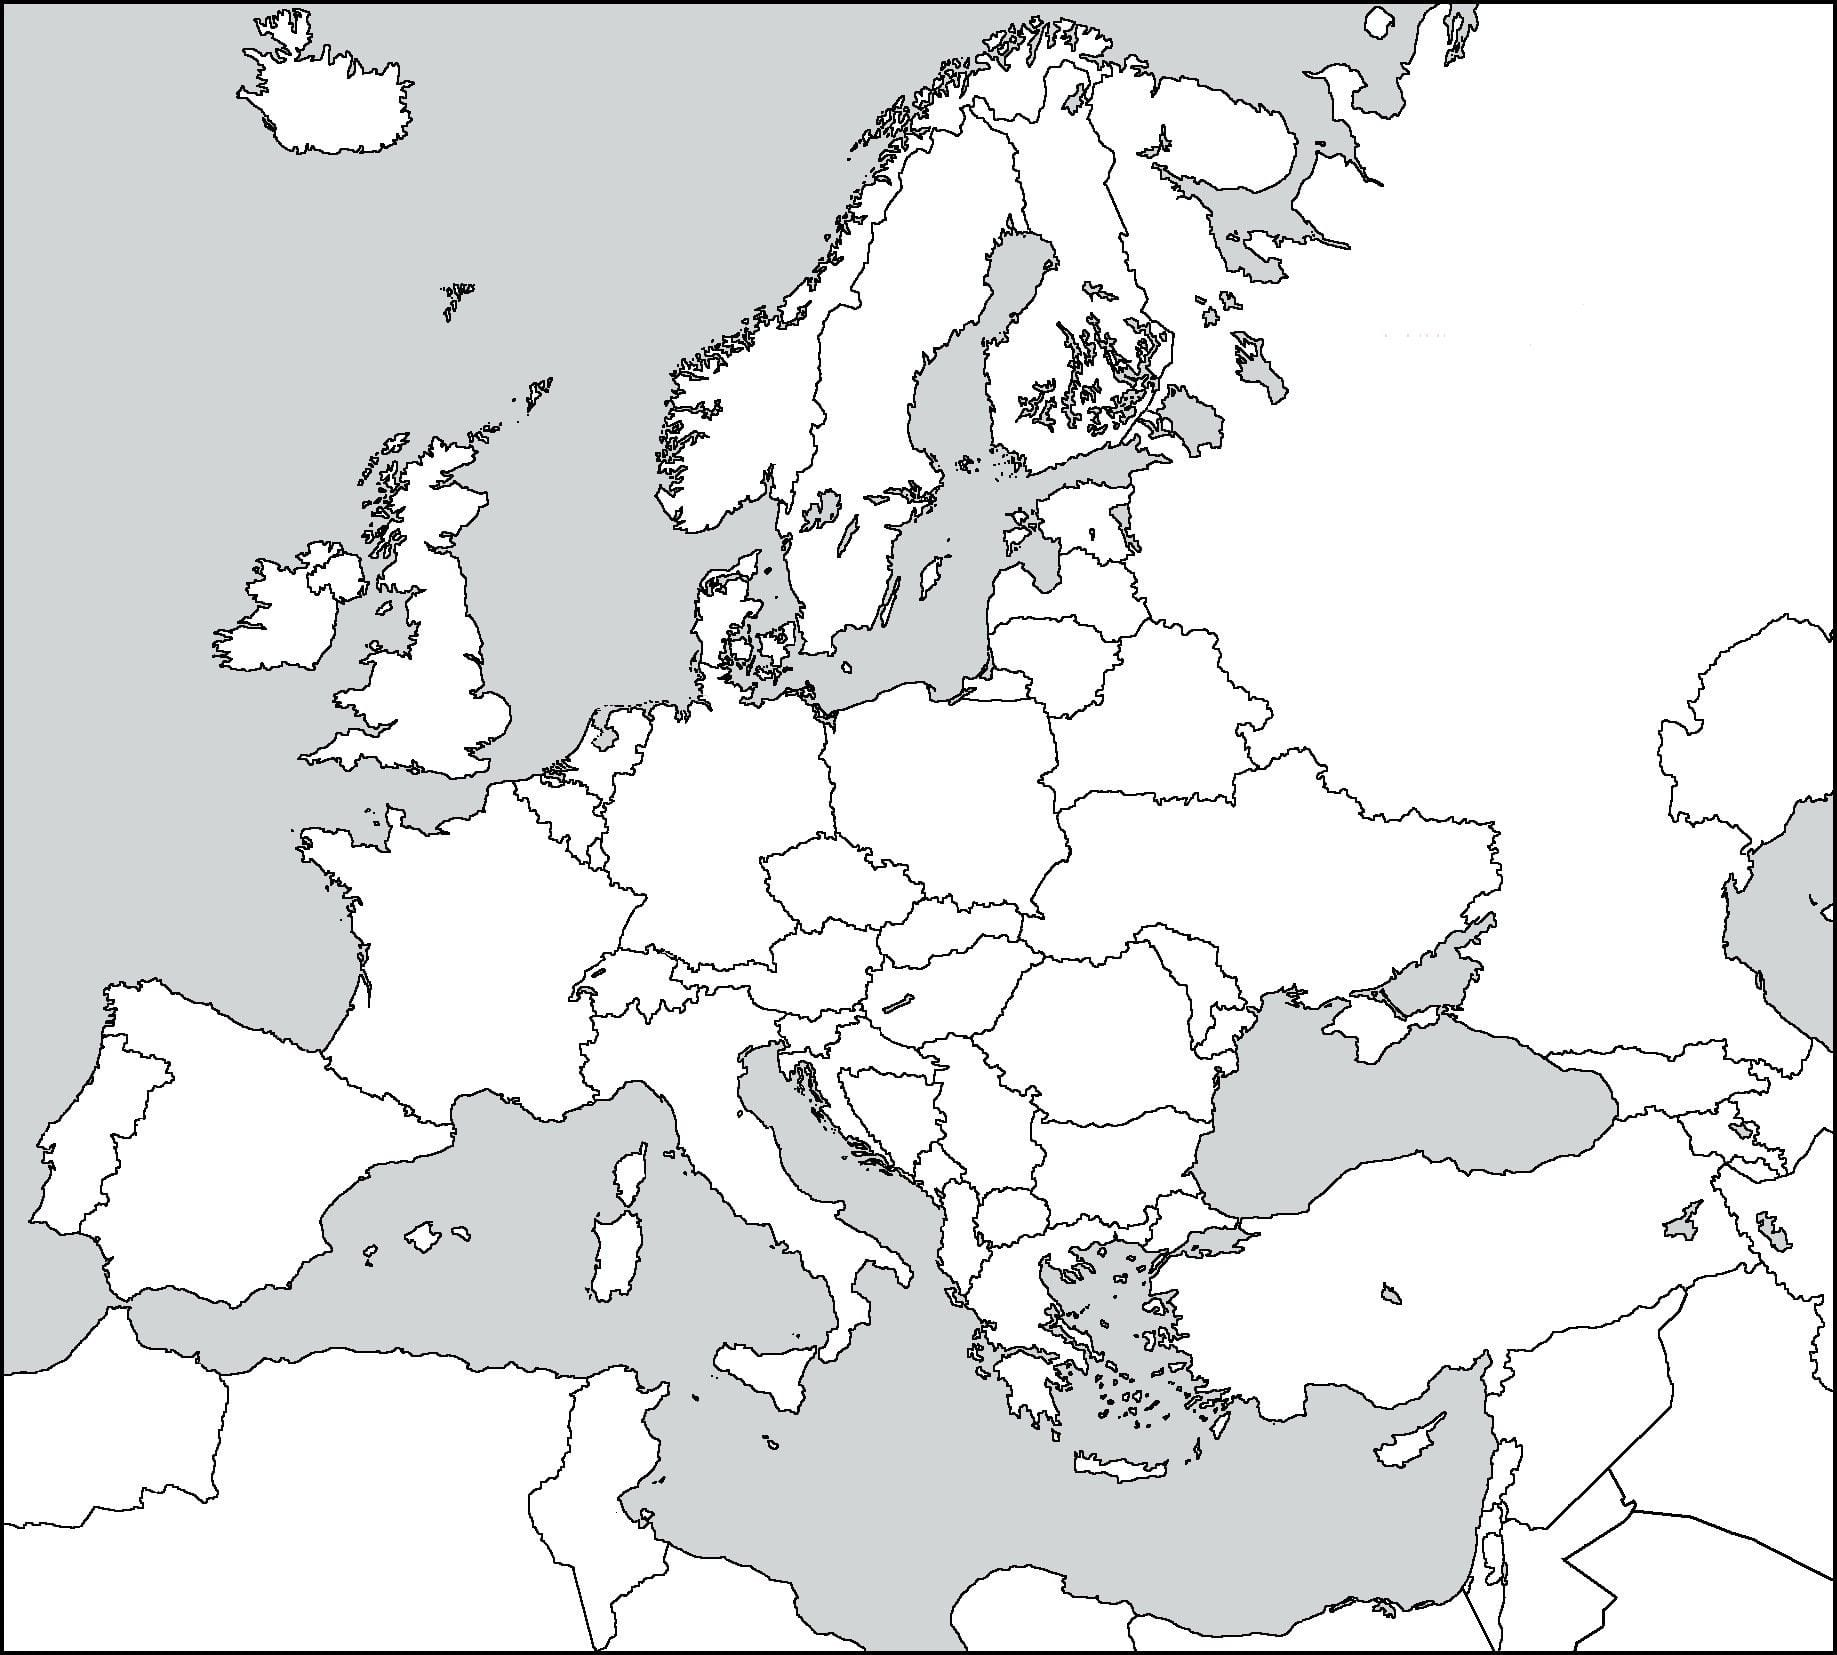 Europe After World R 1 Map Worksheet Answers